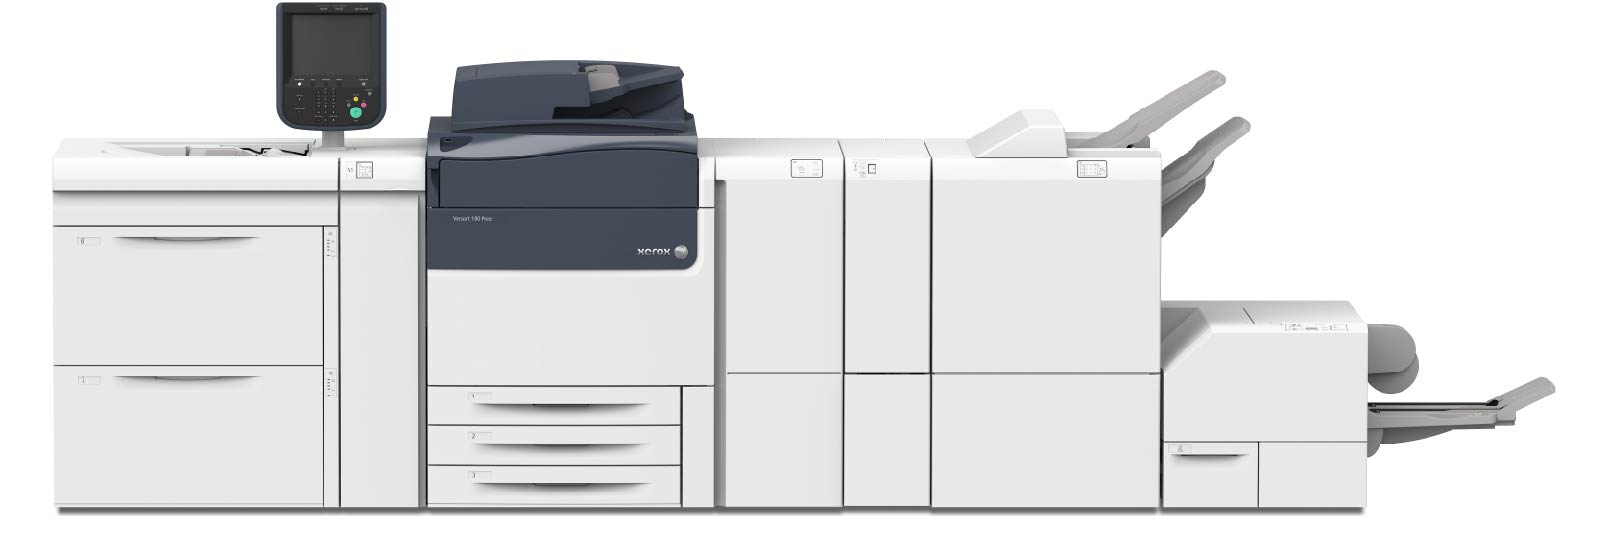 XEROX 2017 VERSANT 180 DIGITAL PRESS